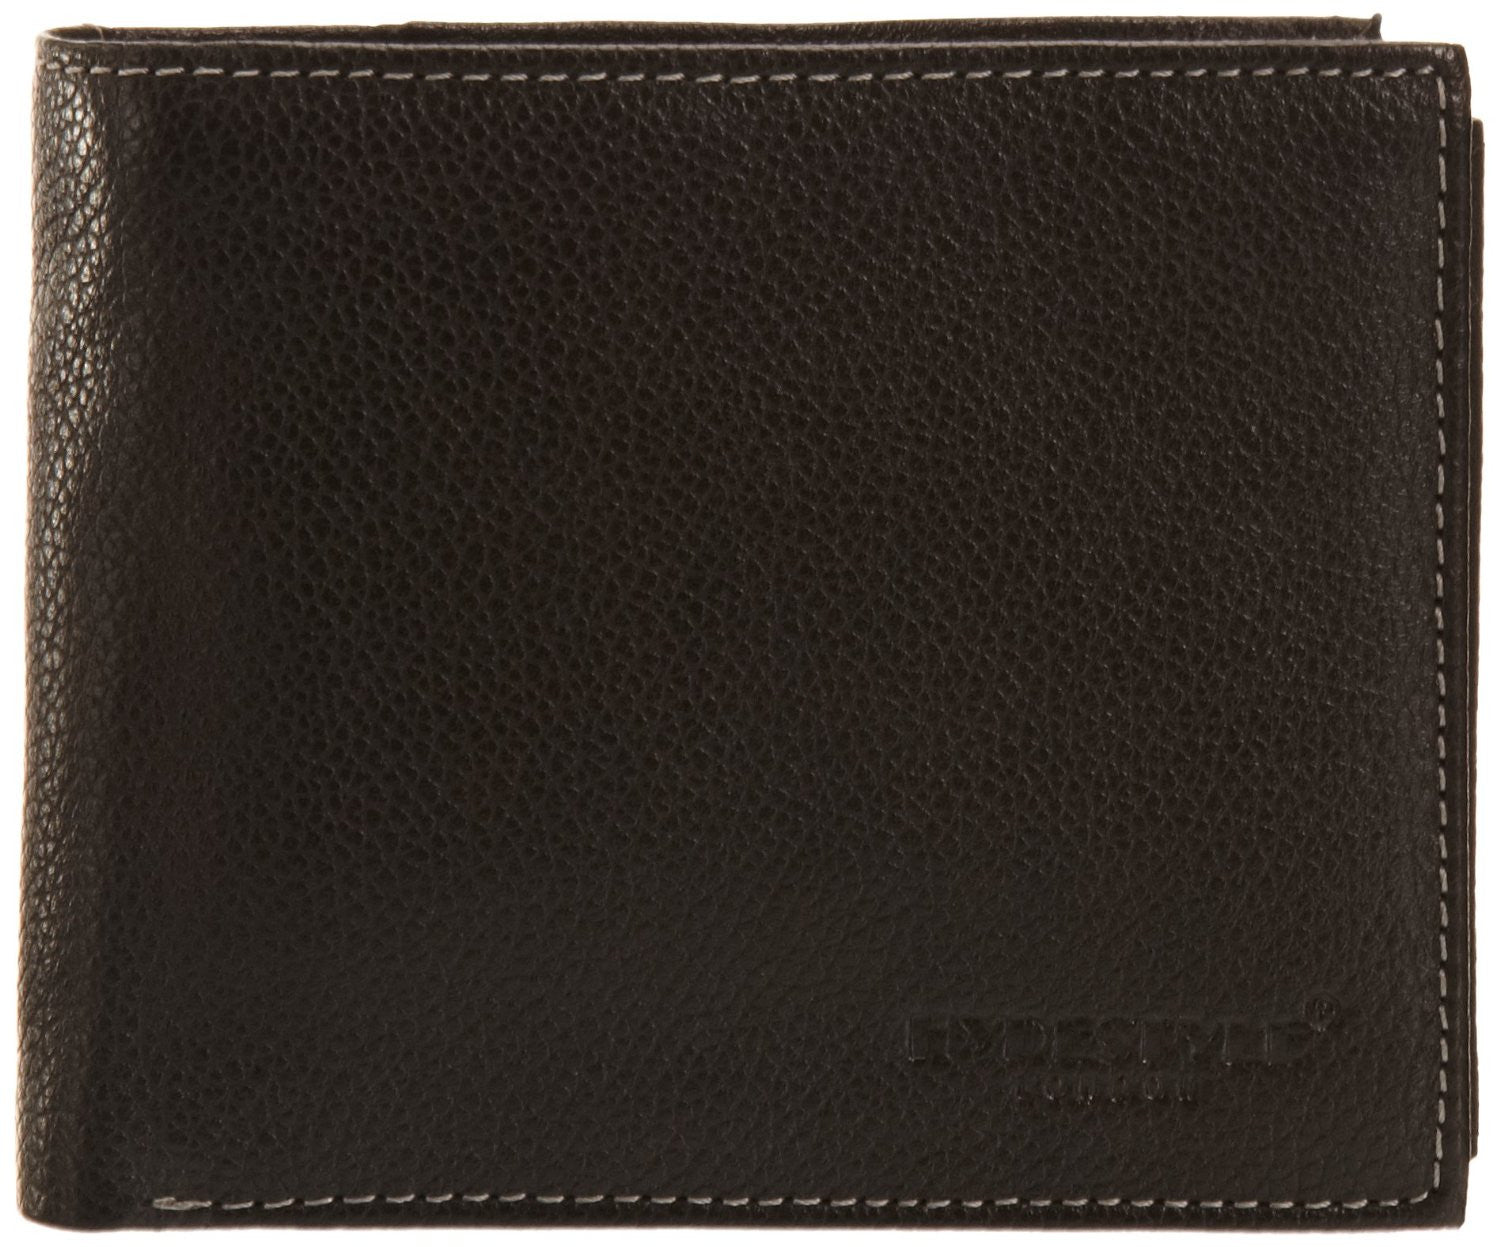 Pratico - mens ID pullout leather trifold wallet #GW51 Black